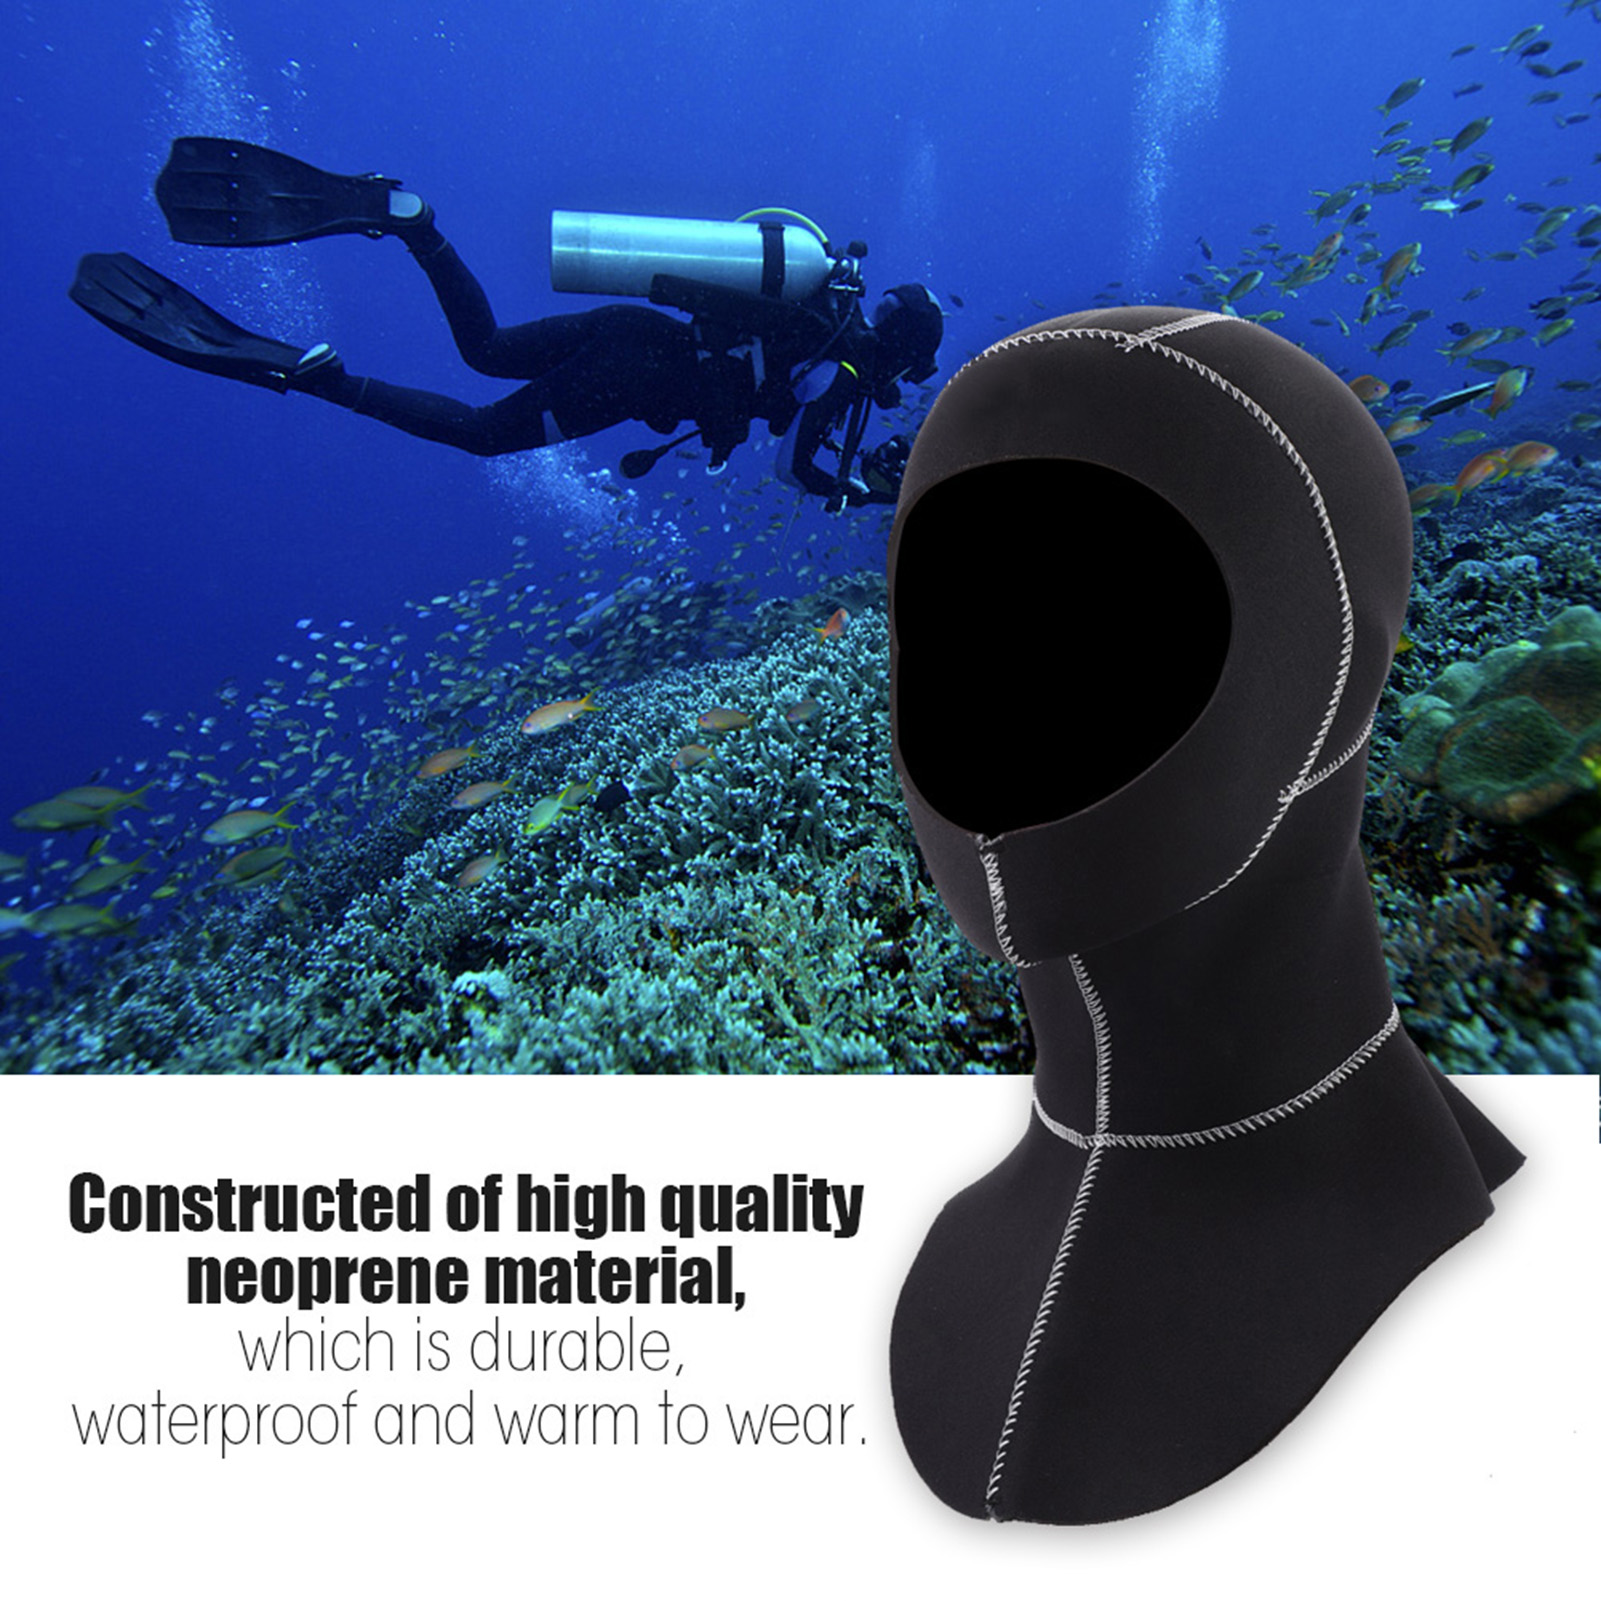 3mm-Neoprene-Scuba-Diving-Cap-Swimming-Warm-keeping-Wetsuit-Snorkeling-Hat-Hood thumbnail 18